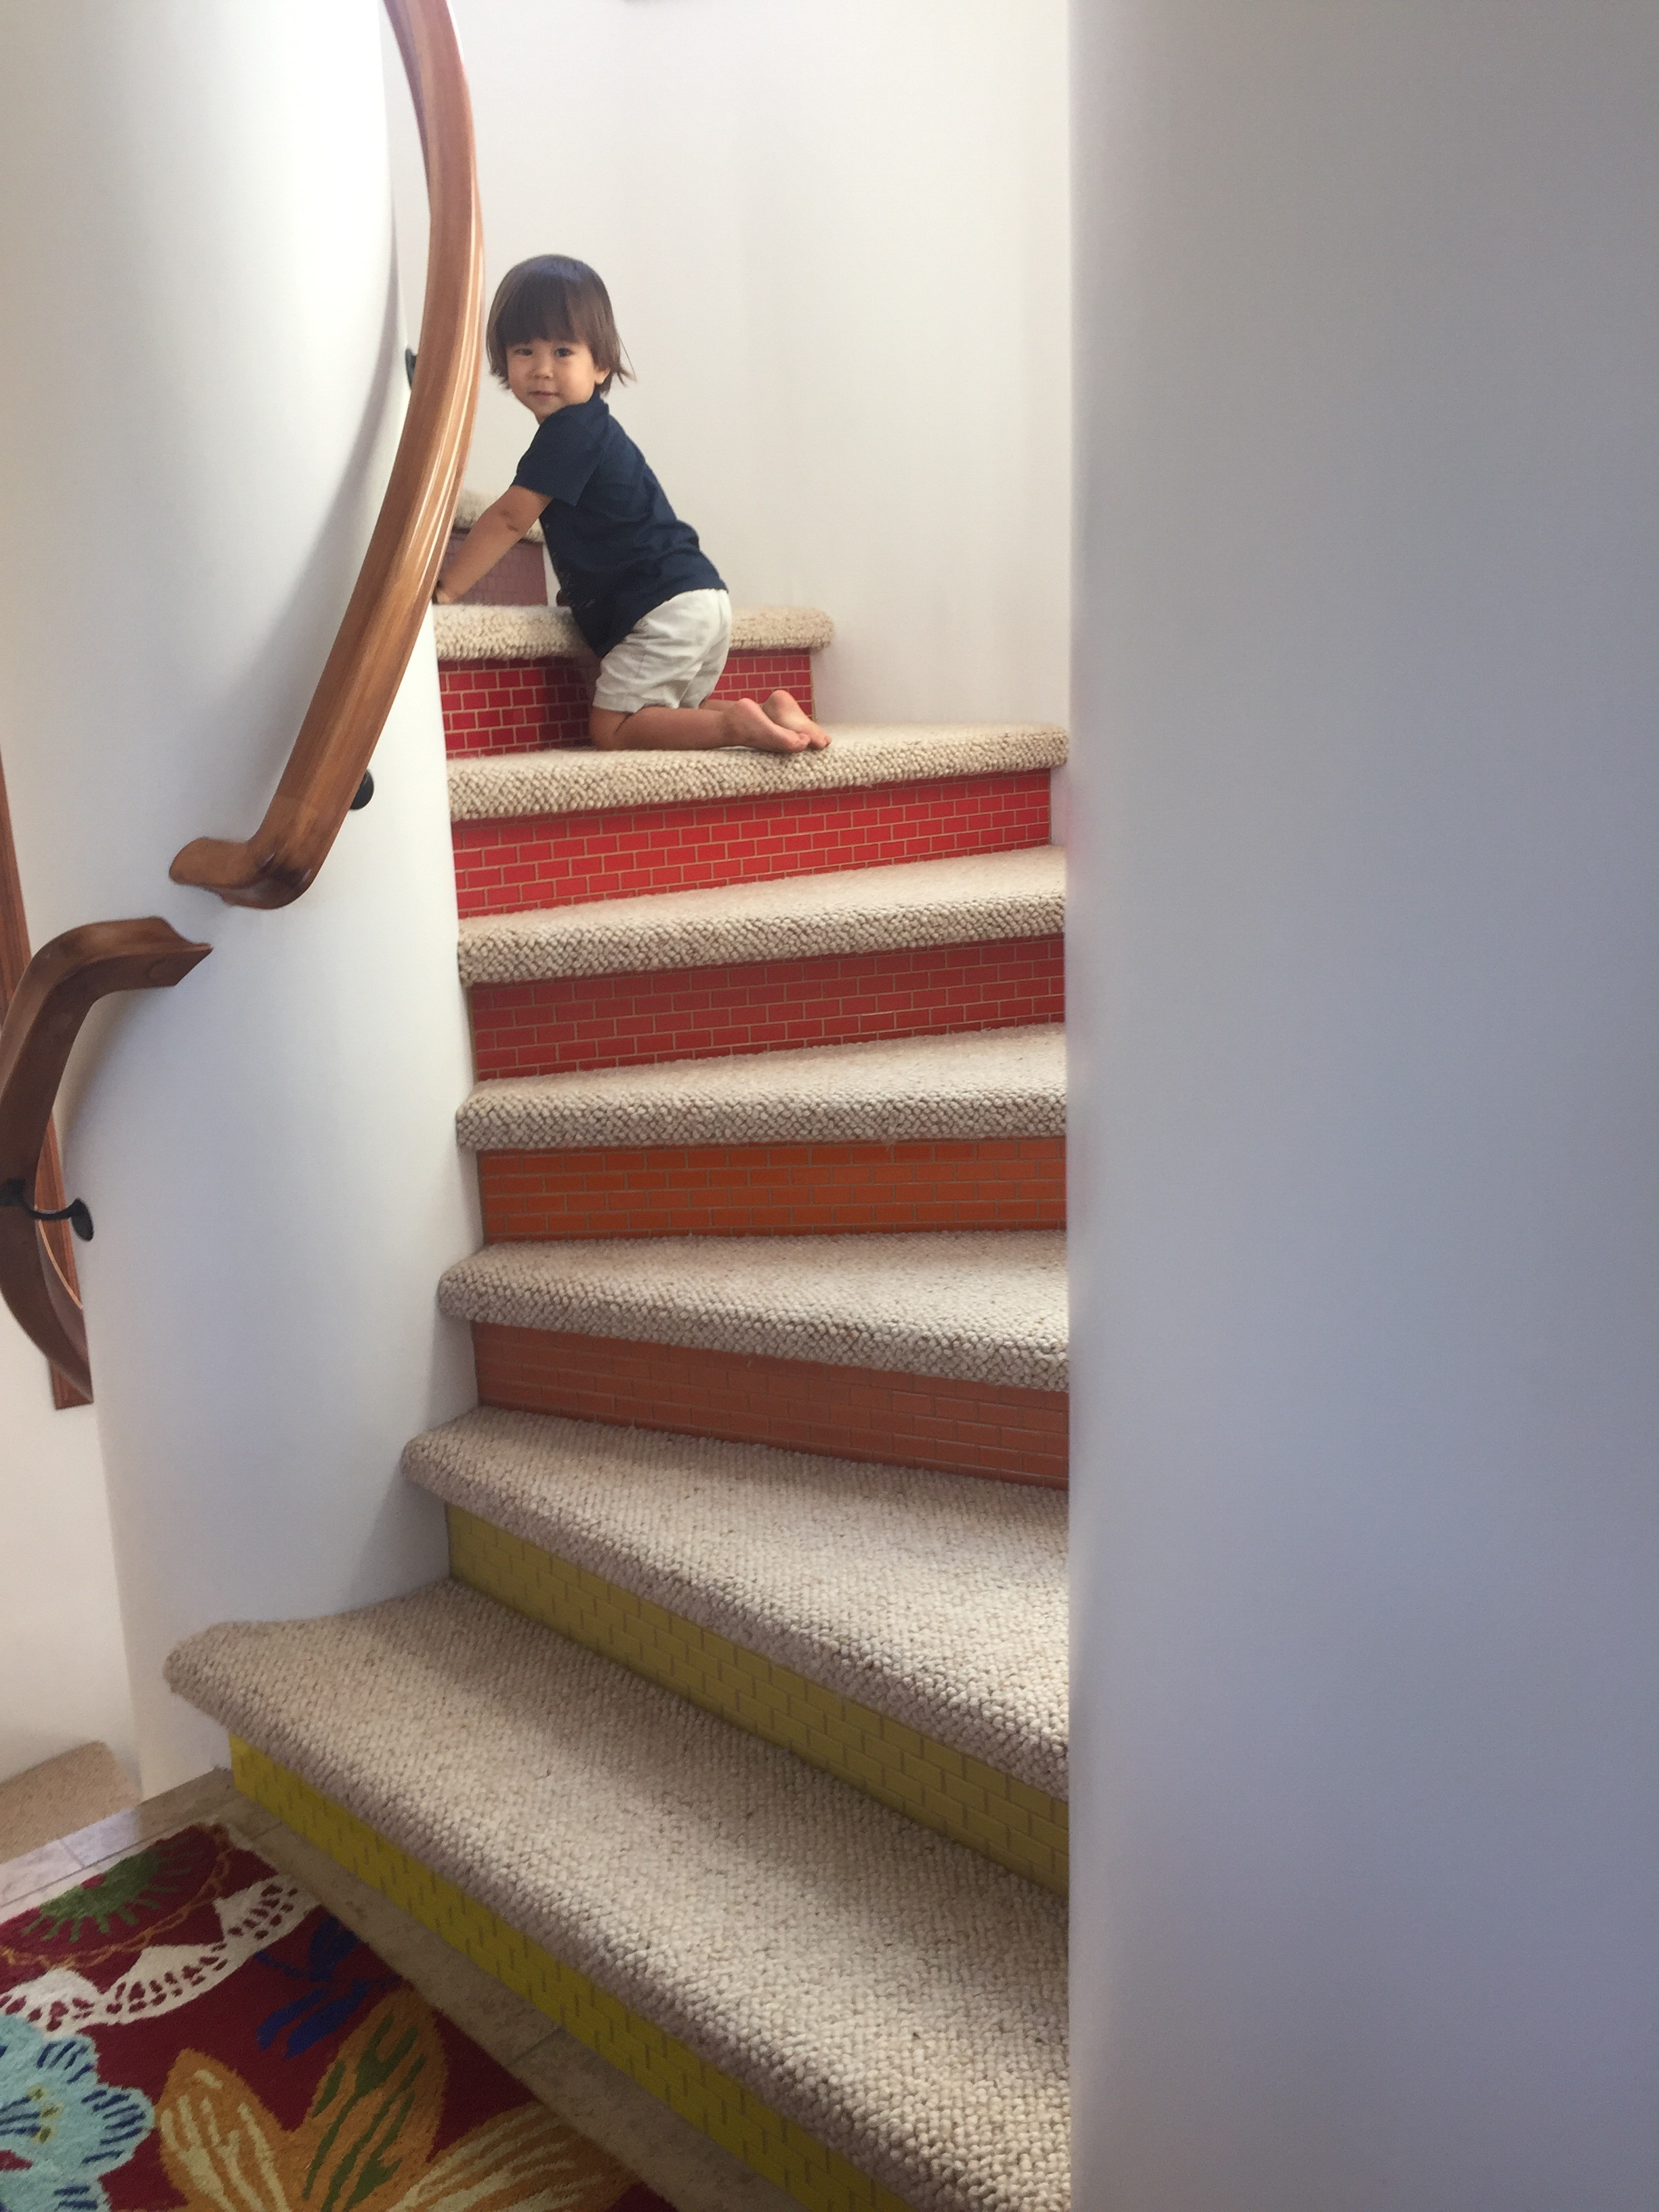 Jack on the stairs